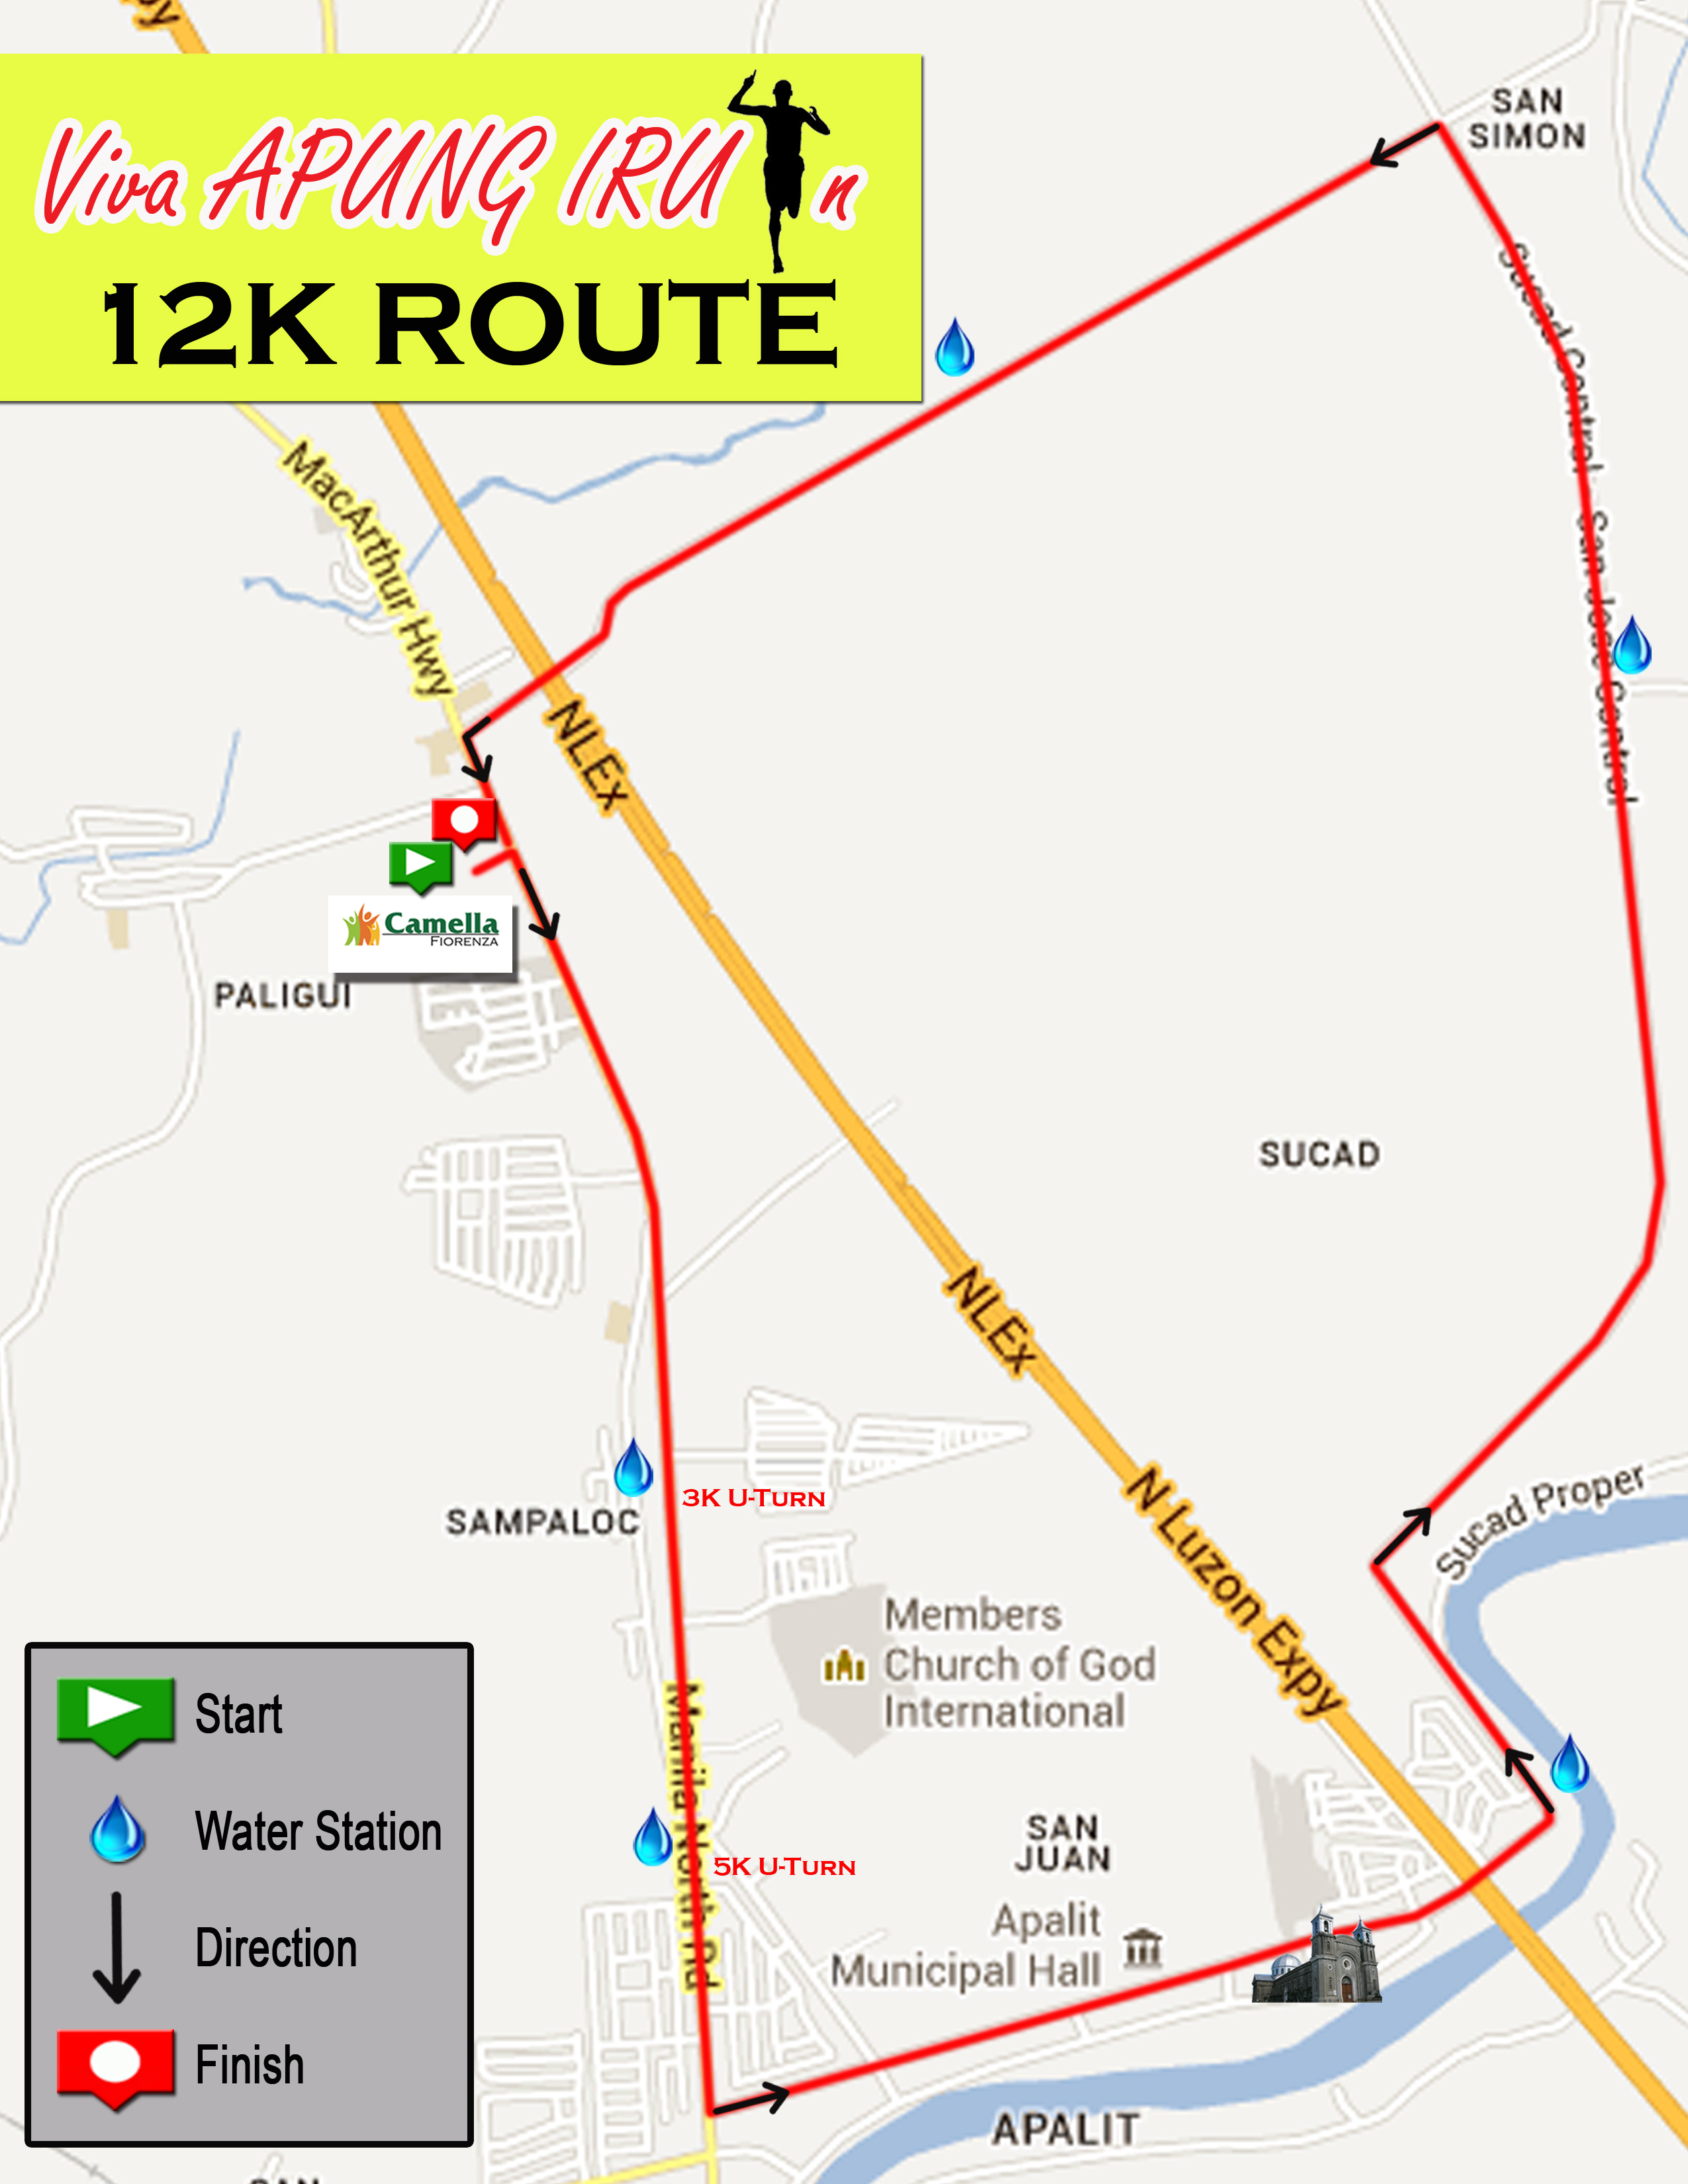 viva-apung-irun-2013-route-map-12k